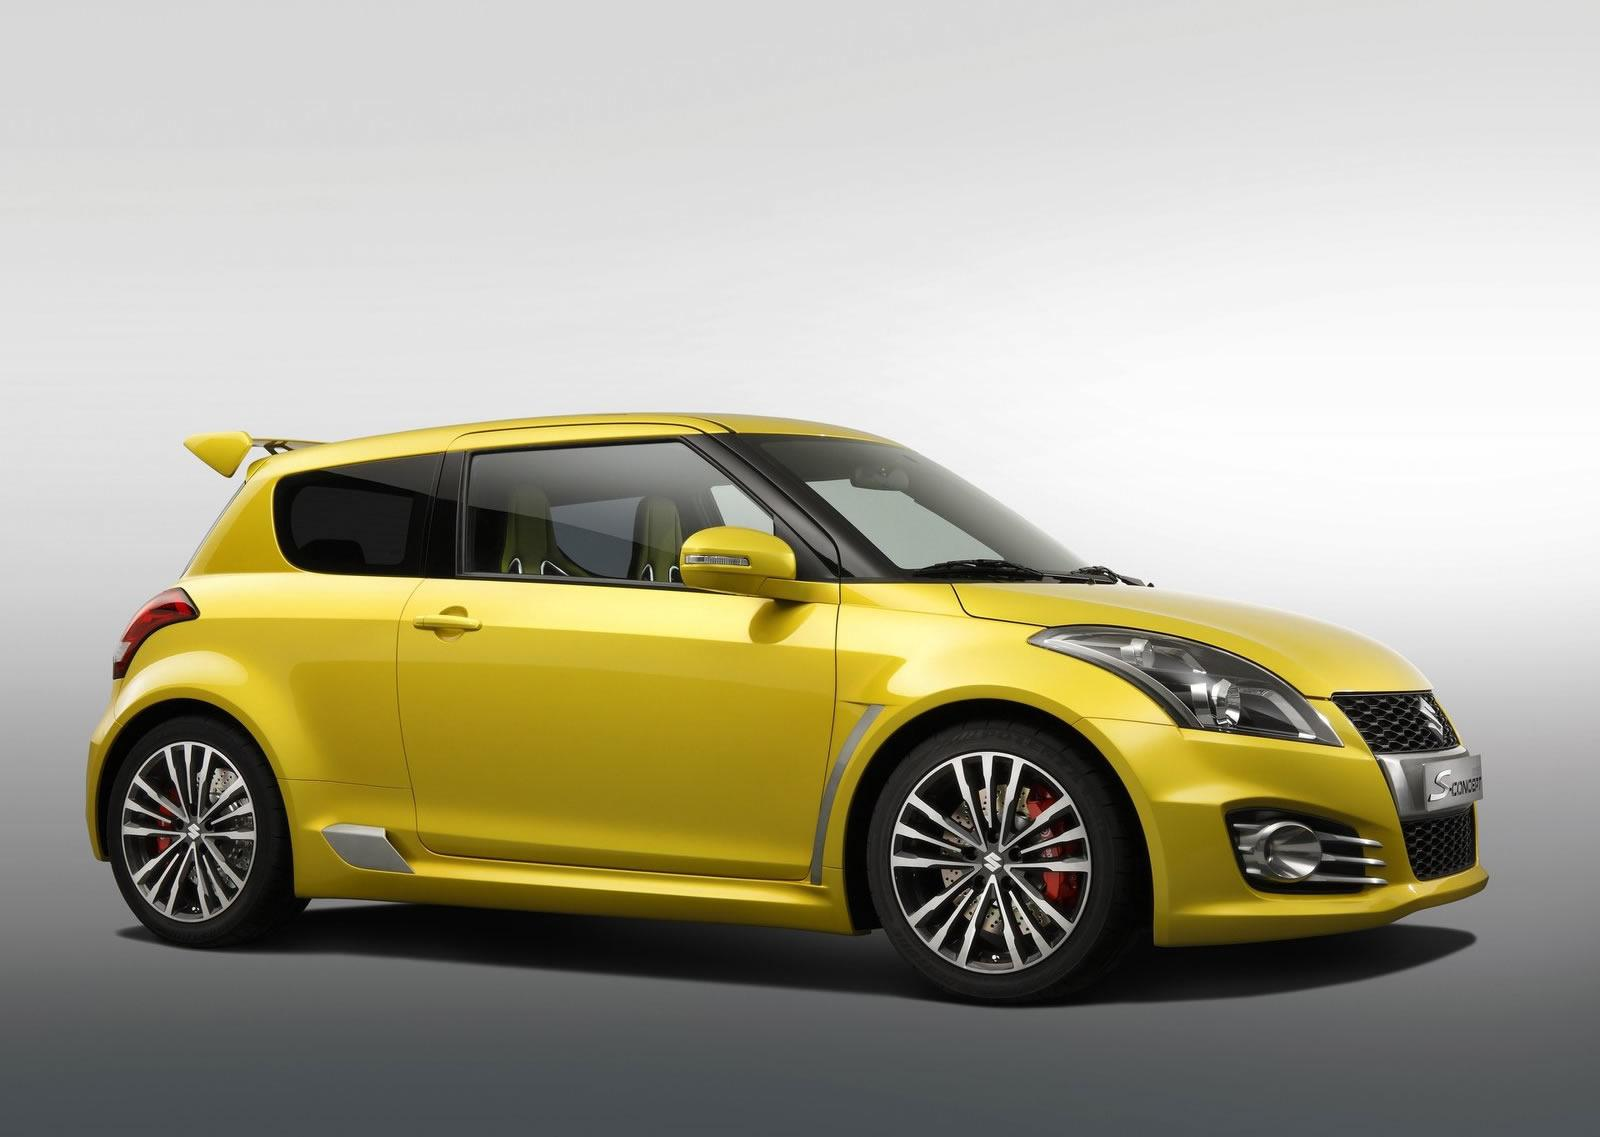 suzuki swift sport looks ready to take the roads early 2012. Black Bedroom Furniture Sets. Home Design Ideas